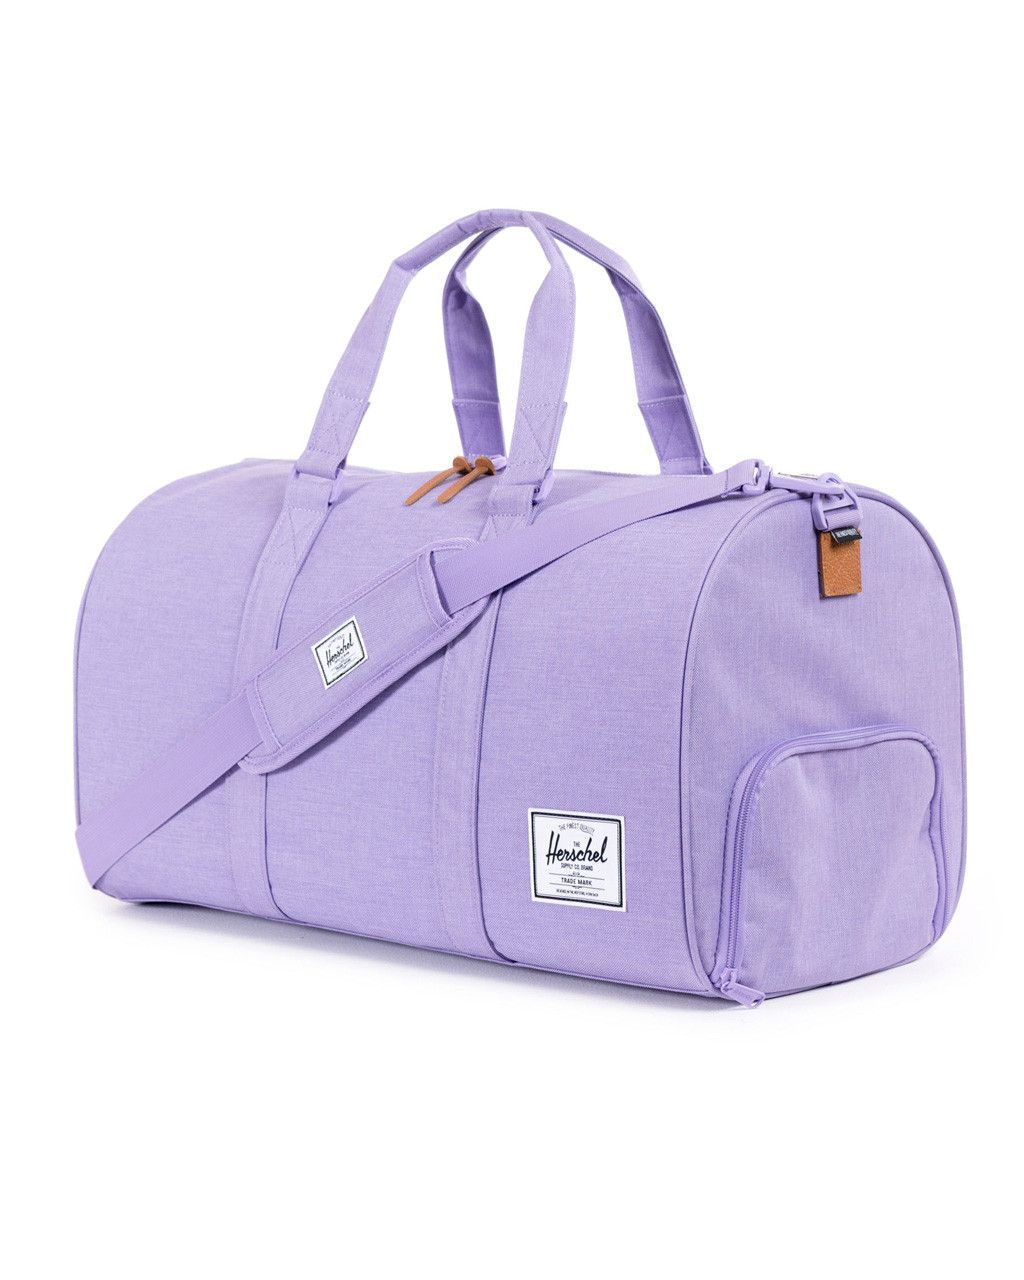 Gym Bag Herschel: Herschel Novel Duffle Bag Lilac